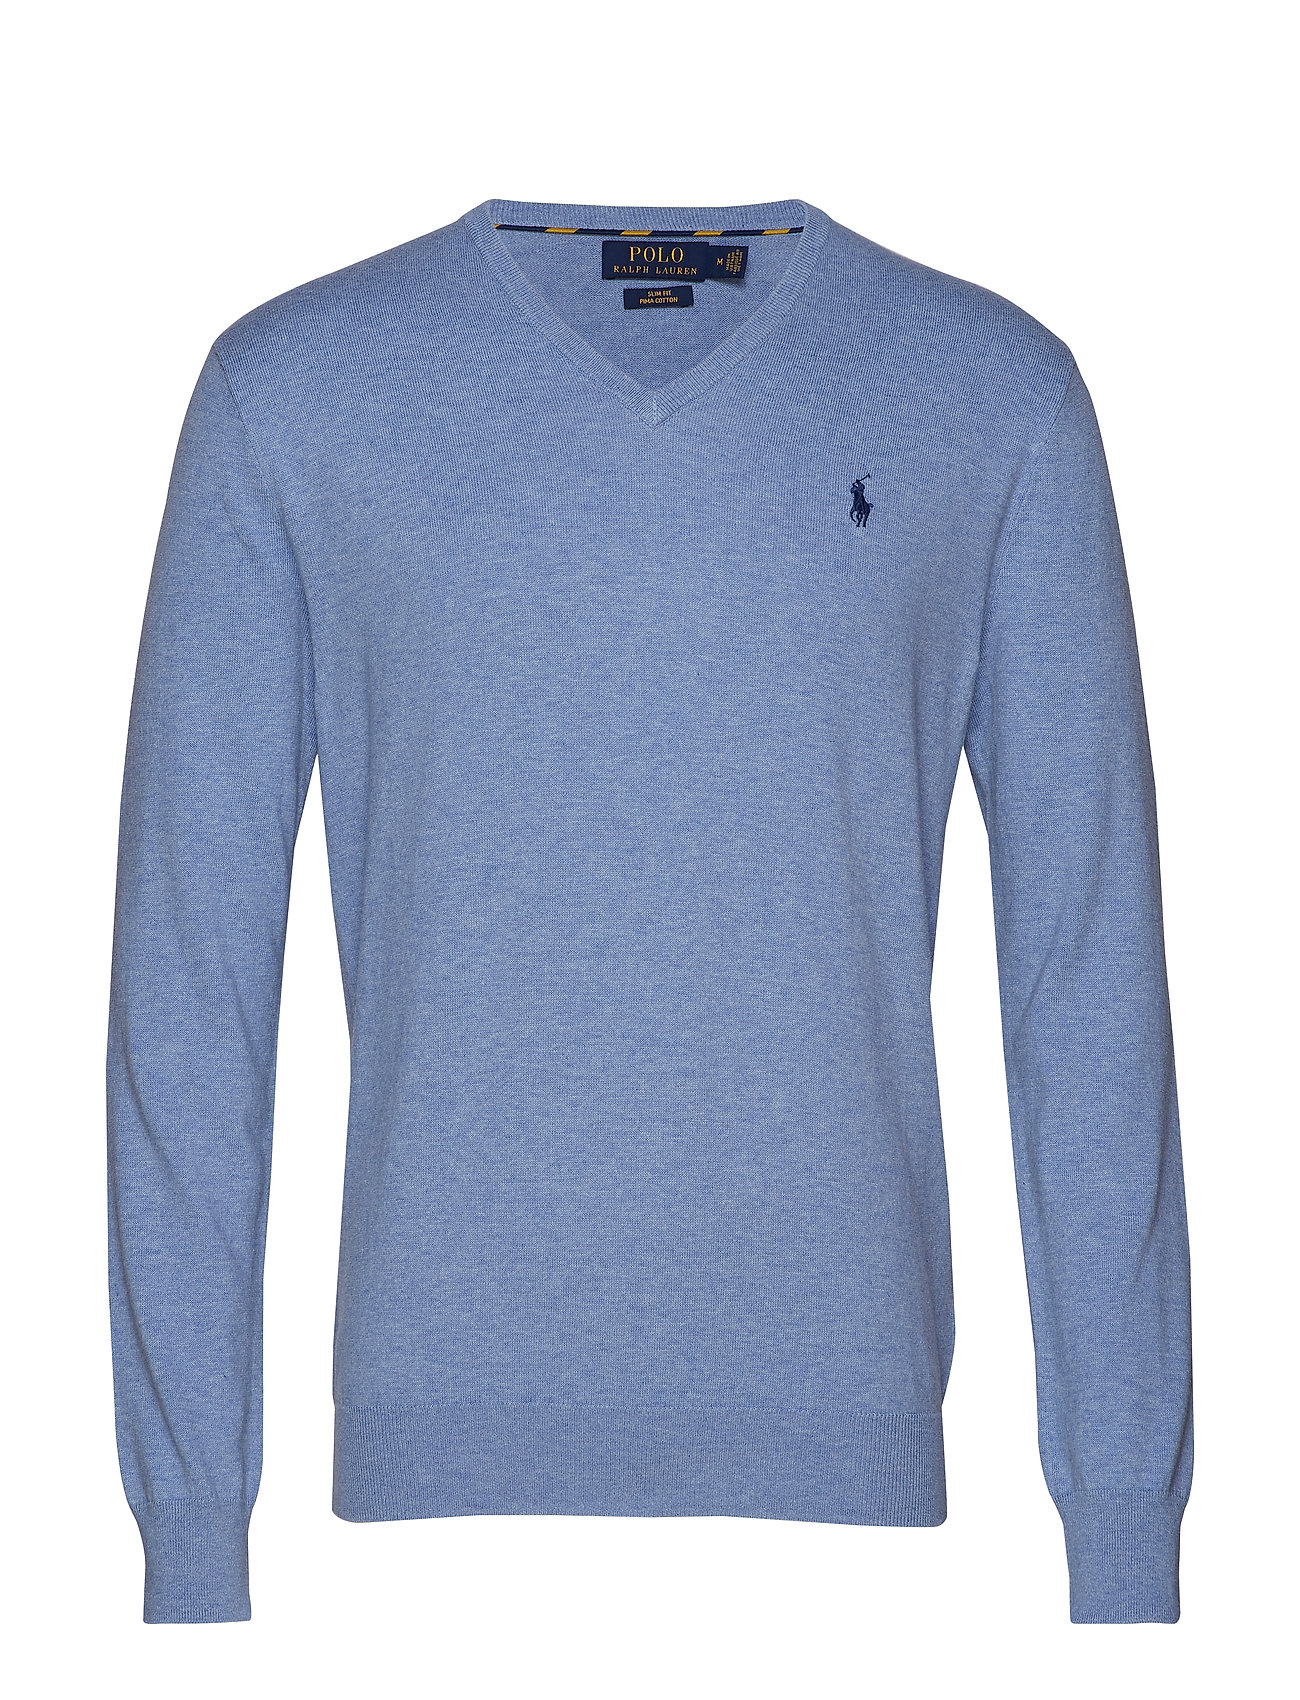 Polo Ralph Lauren Slim Fit Cotton V-Neck Sweater - NEW CAMPUS BLUE H